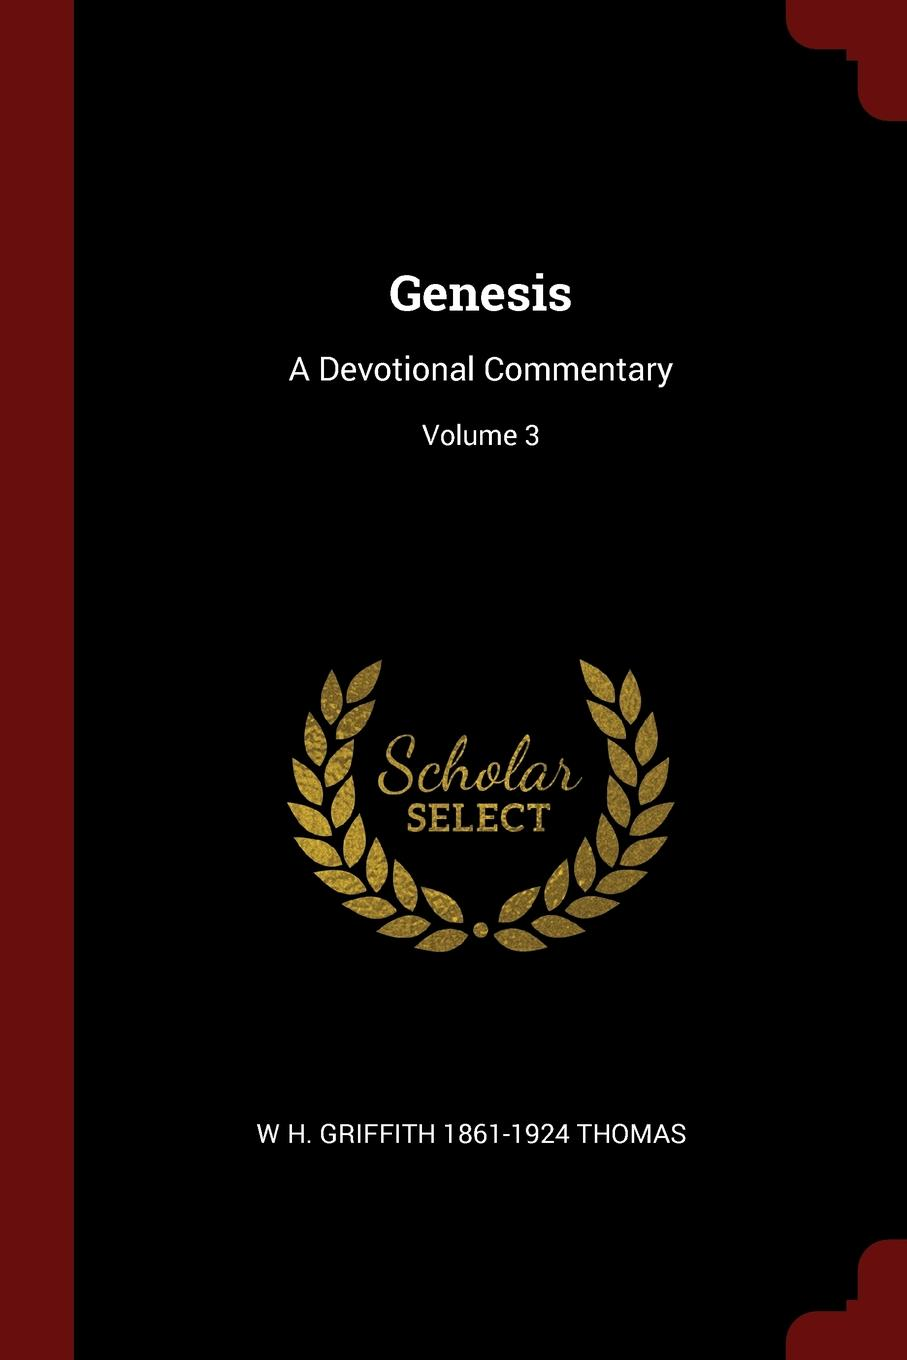 Genesis. A Devotional Commentary; Volume 3. W H. Griffith 1861-1924 Thomas